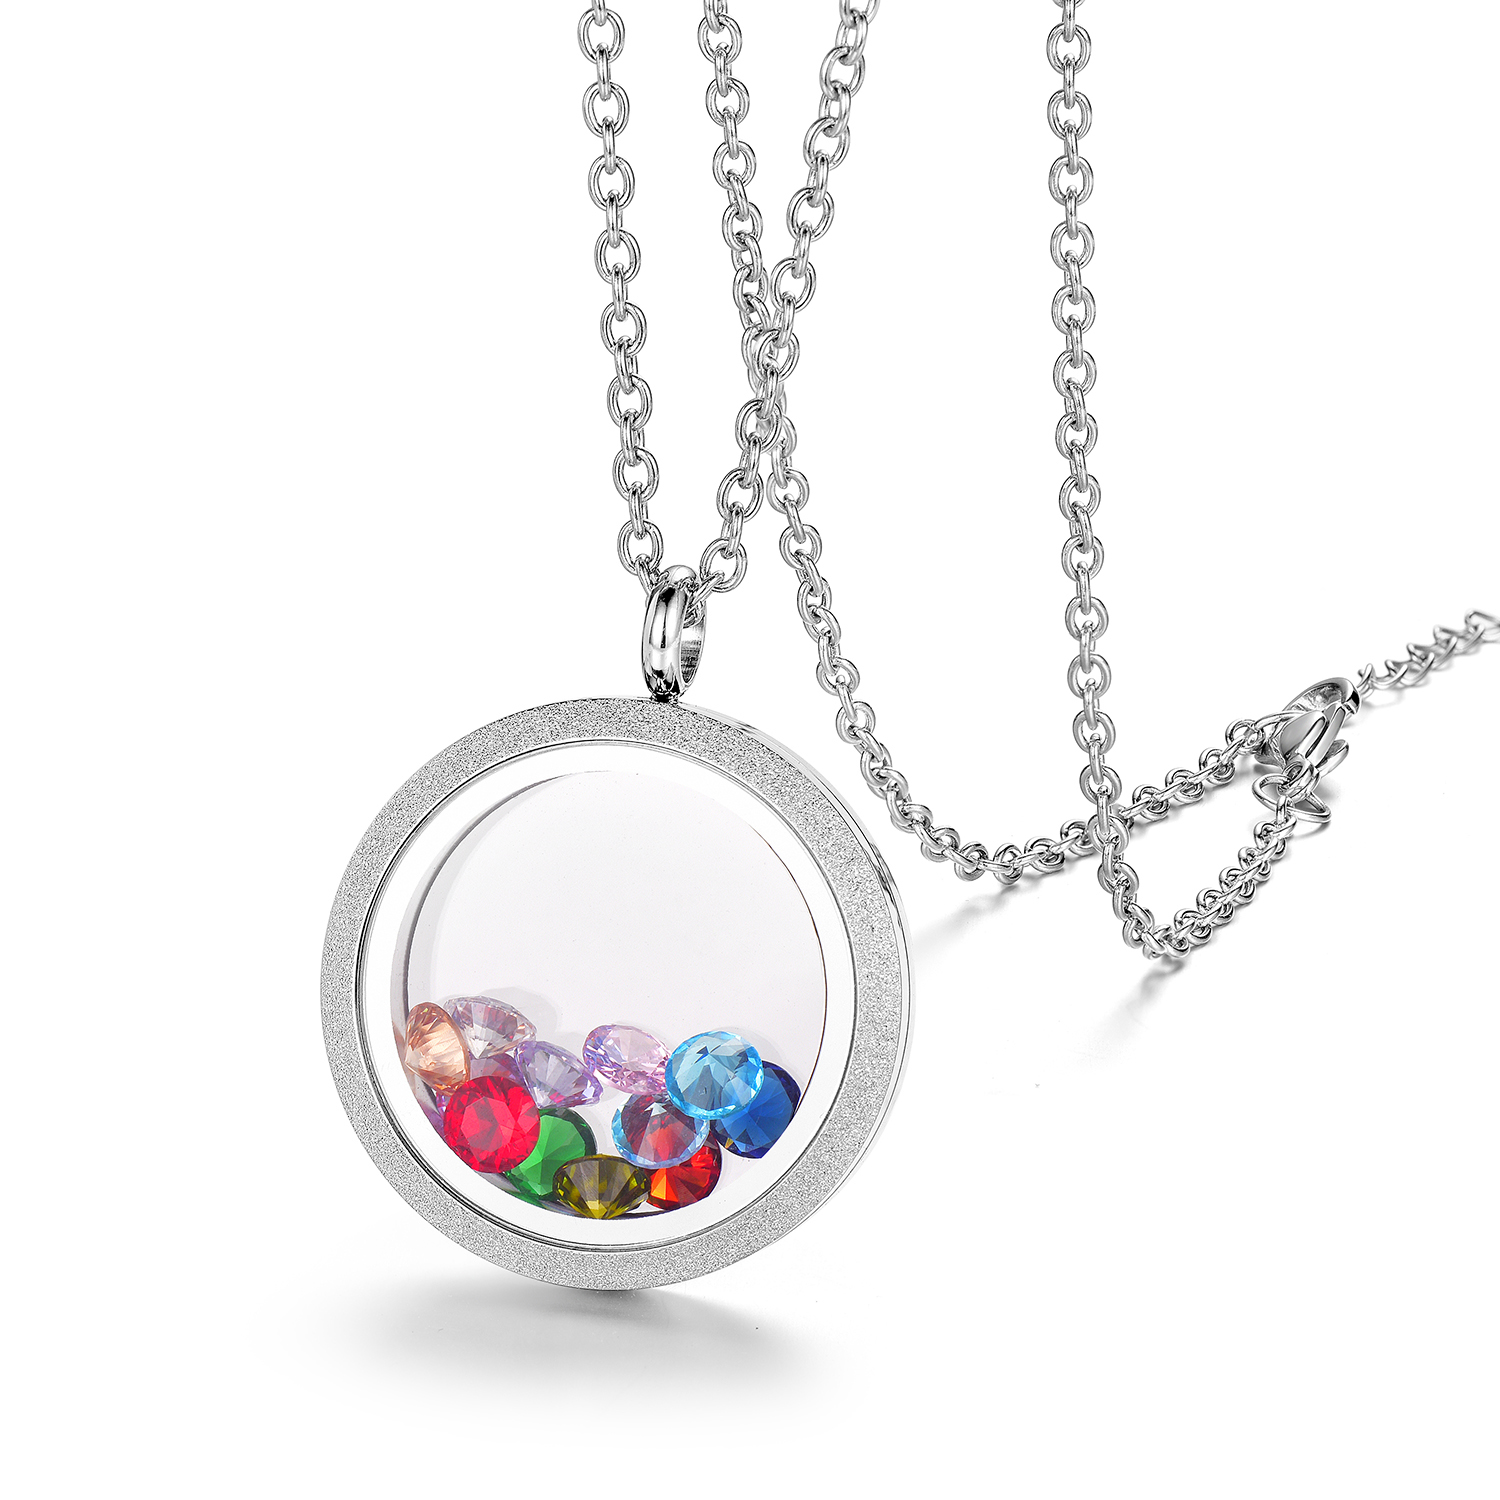 EVERLEAD Sparkle 30mm Floating Locket Screw Stainless Steel Waterproof Pendant Necklace Including Chain